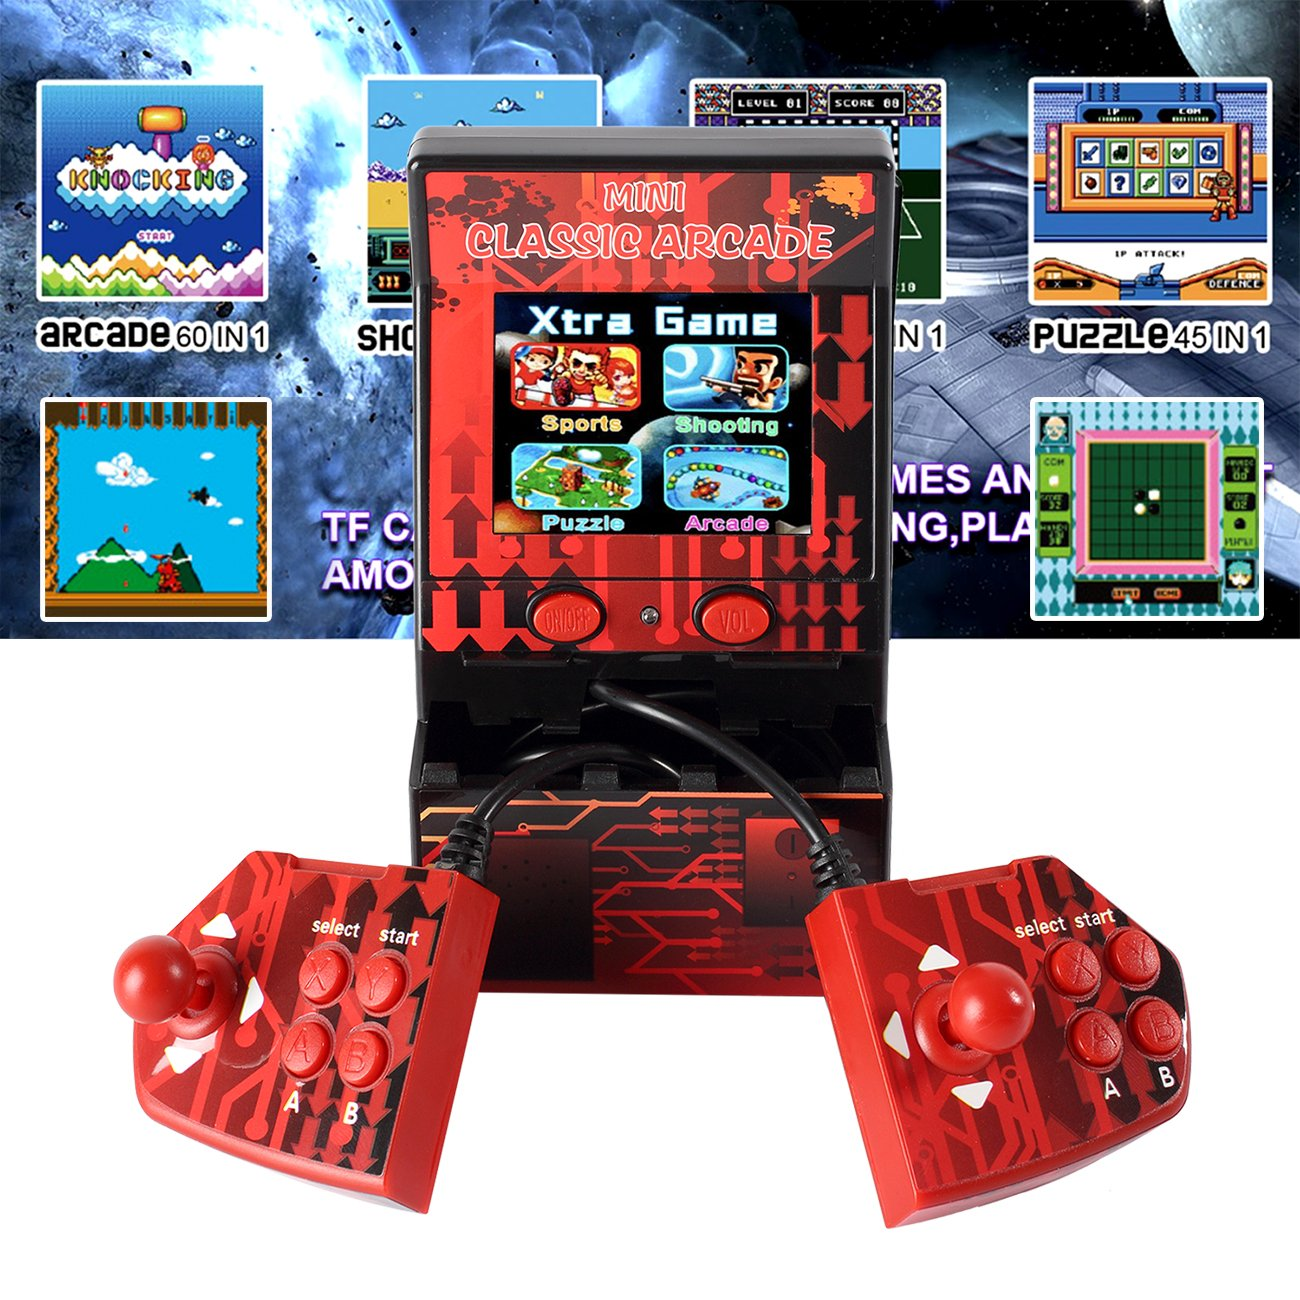 Arcade Games - PrimaryGames - Play Free Online Games